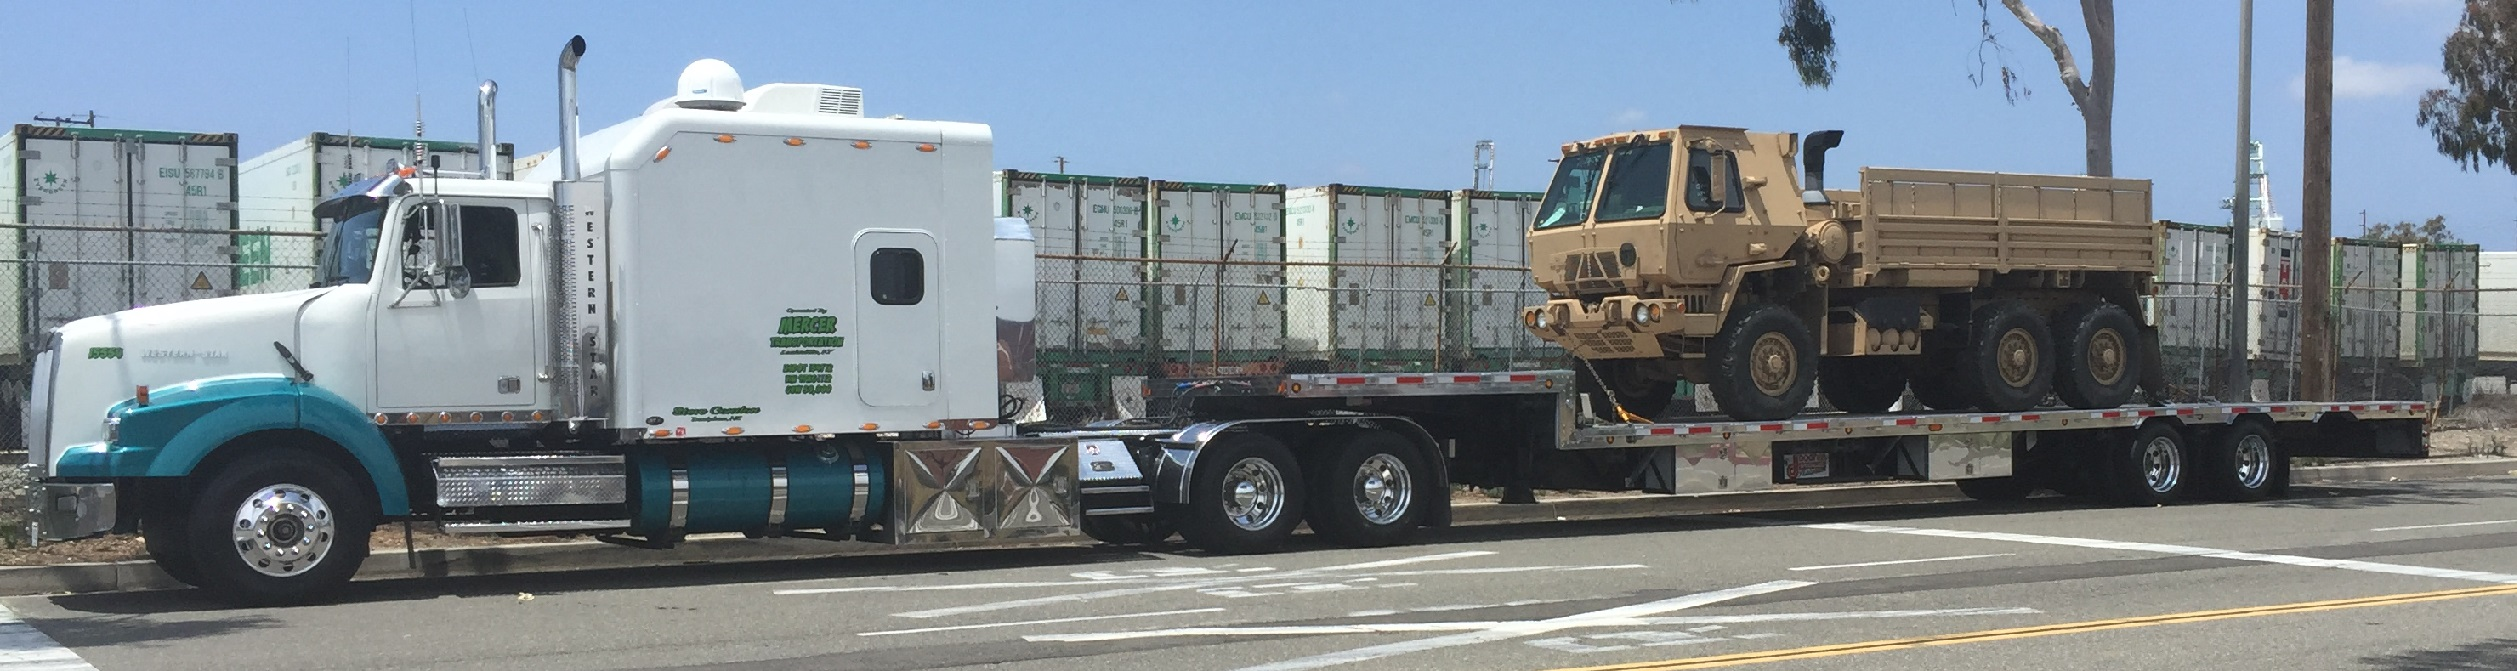 2009 Western Star And 2014 Doonan For Sale Mercer